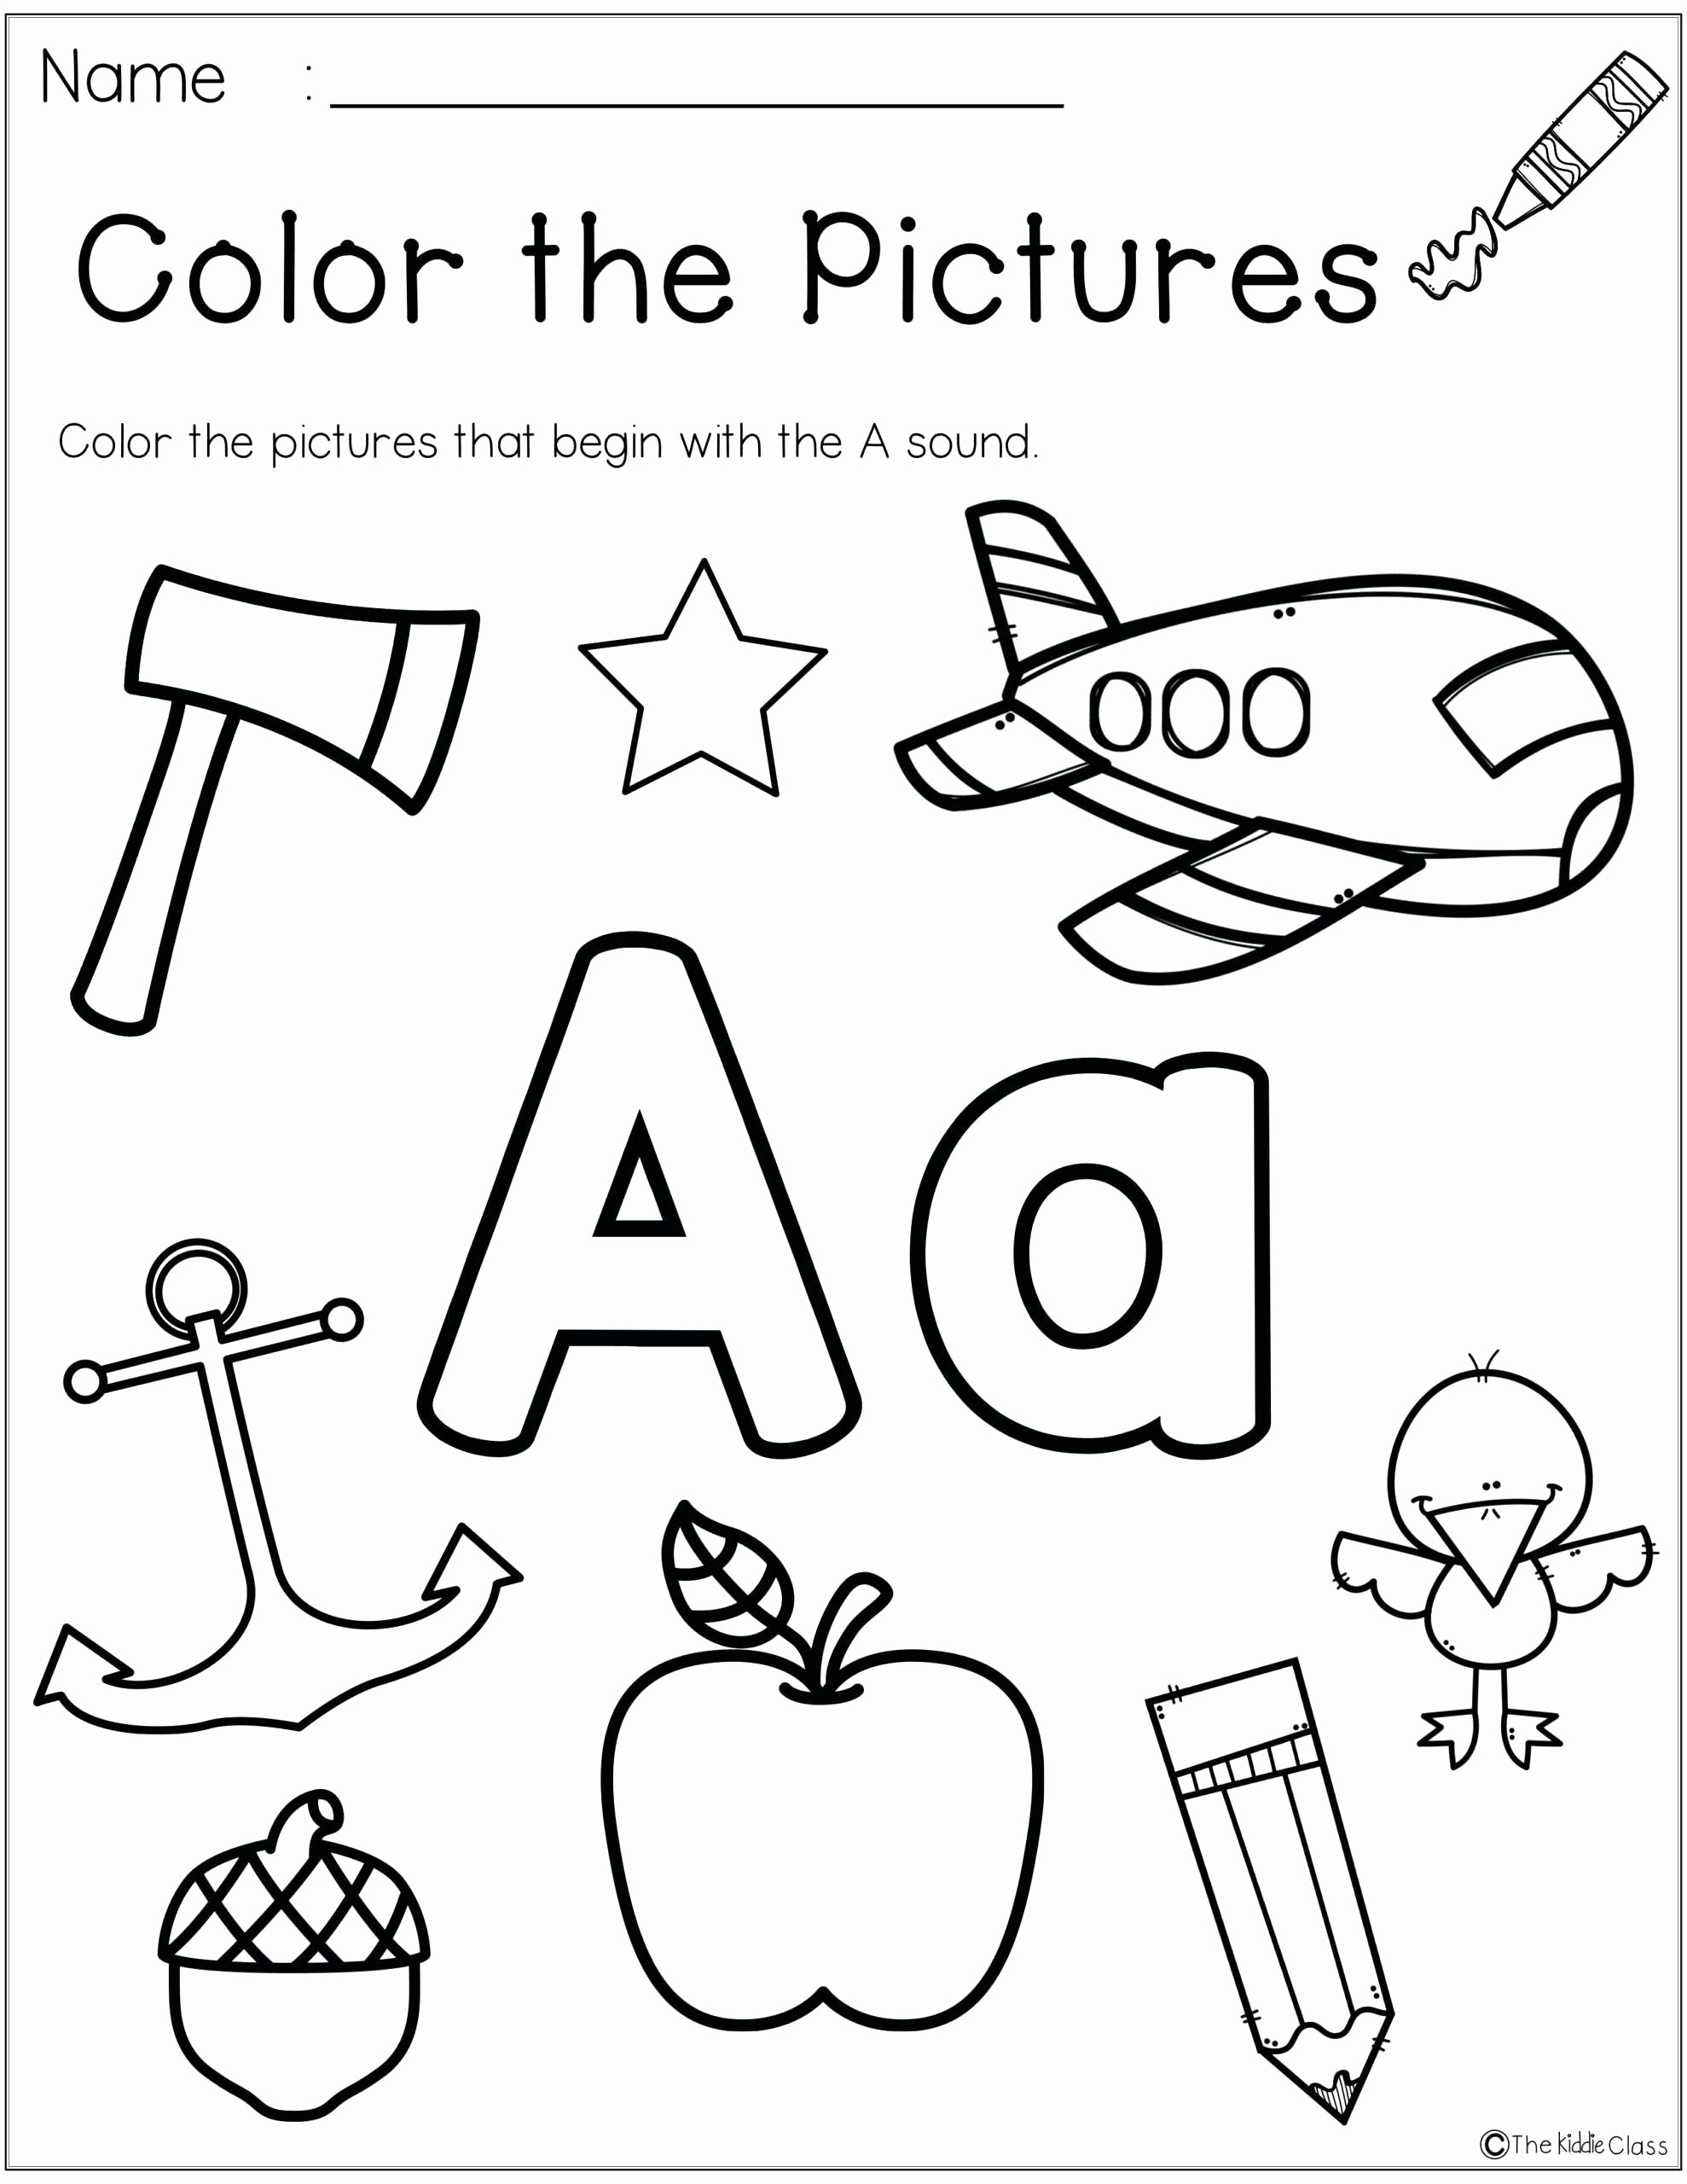 Printable Letter A Worksheets for Preschoolers Awesome Kindergarten Worksheets Addition for Months the Year